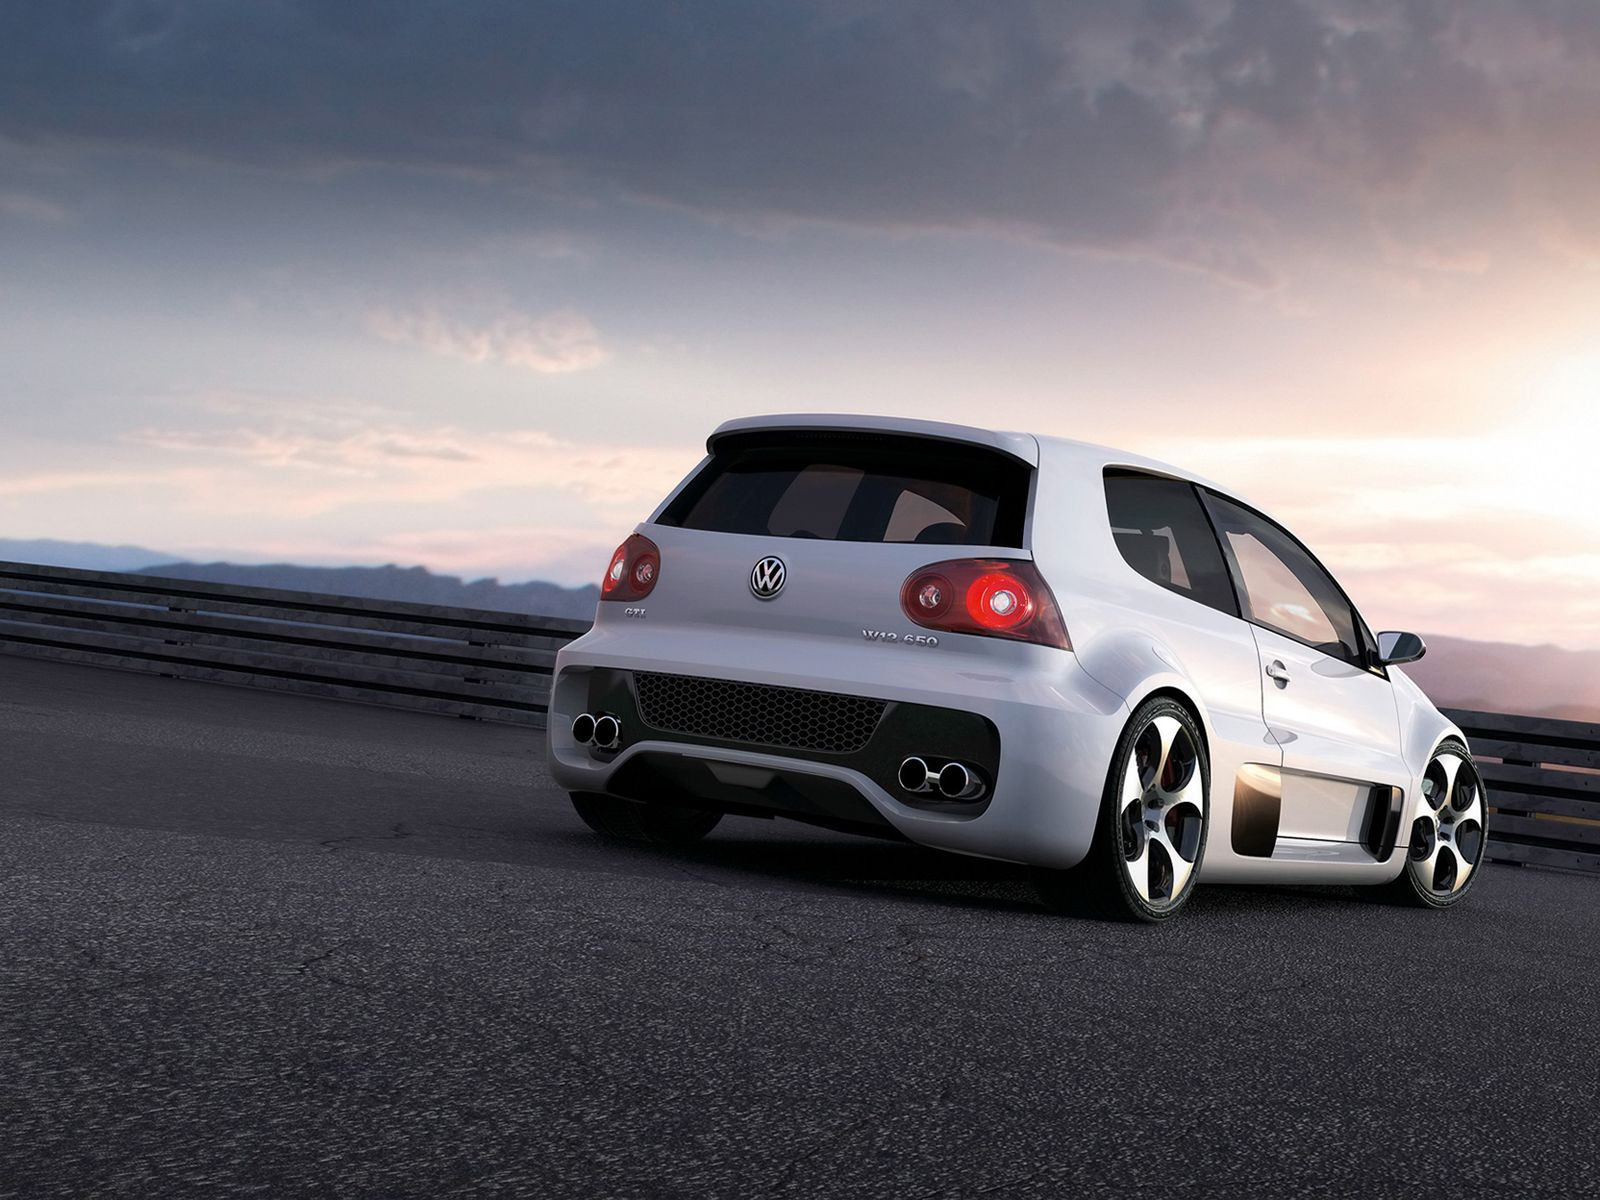 Volkswagen Golf GTI 650 Widescreen Exotic Car Picture Of